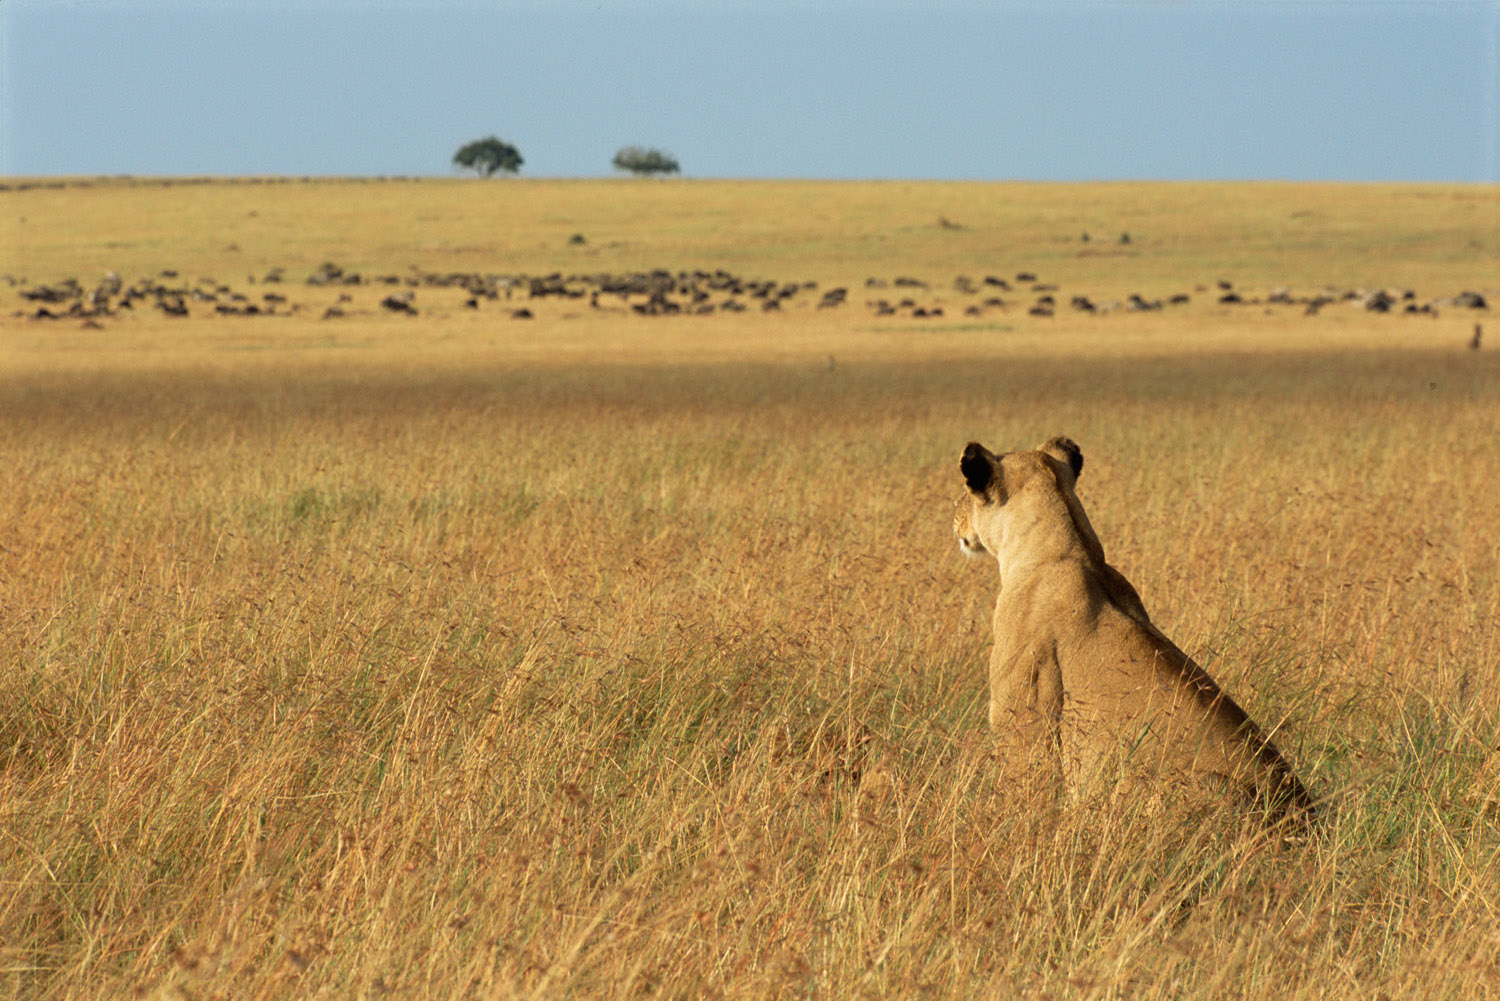 Lioness watching wildebeest prey, Masai Mara National Reserve, Kenya